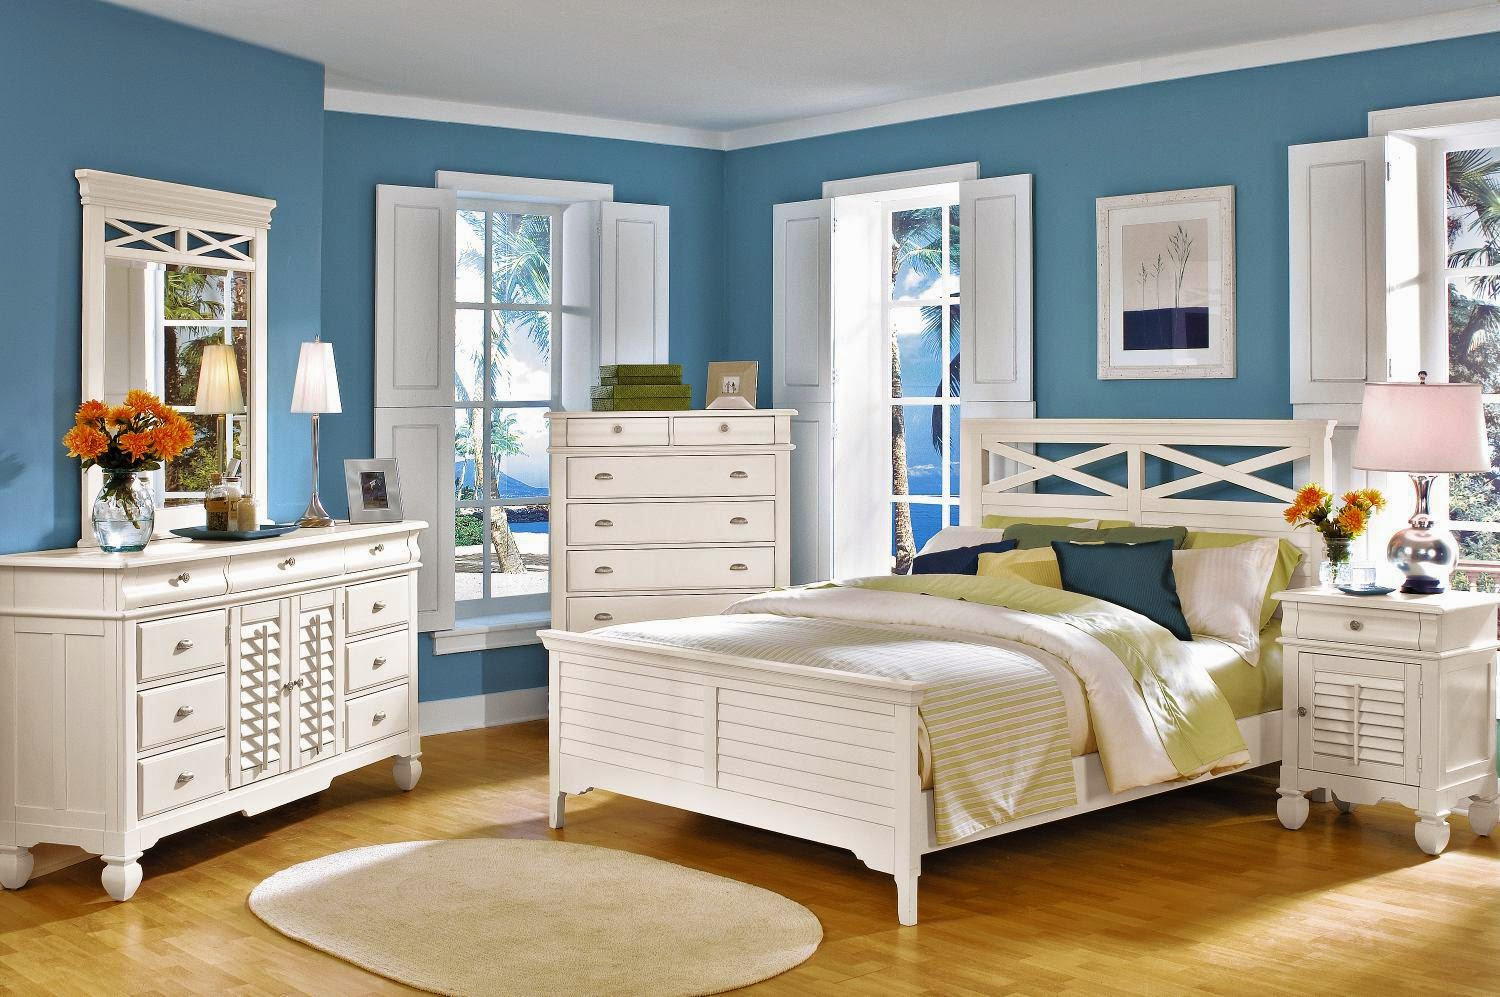 Bedroom With Blue Walls  Bedroom Decorating Ideas for Blue Walls dashingamrit